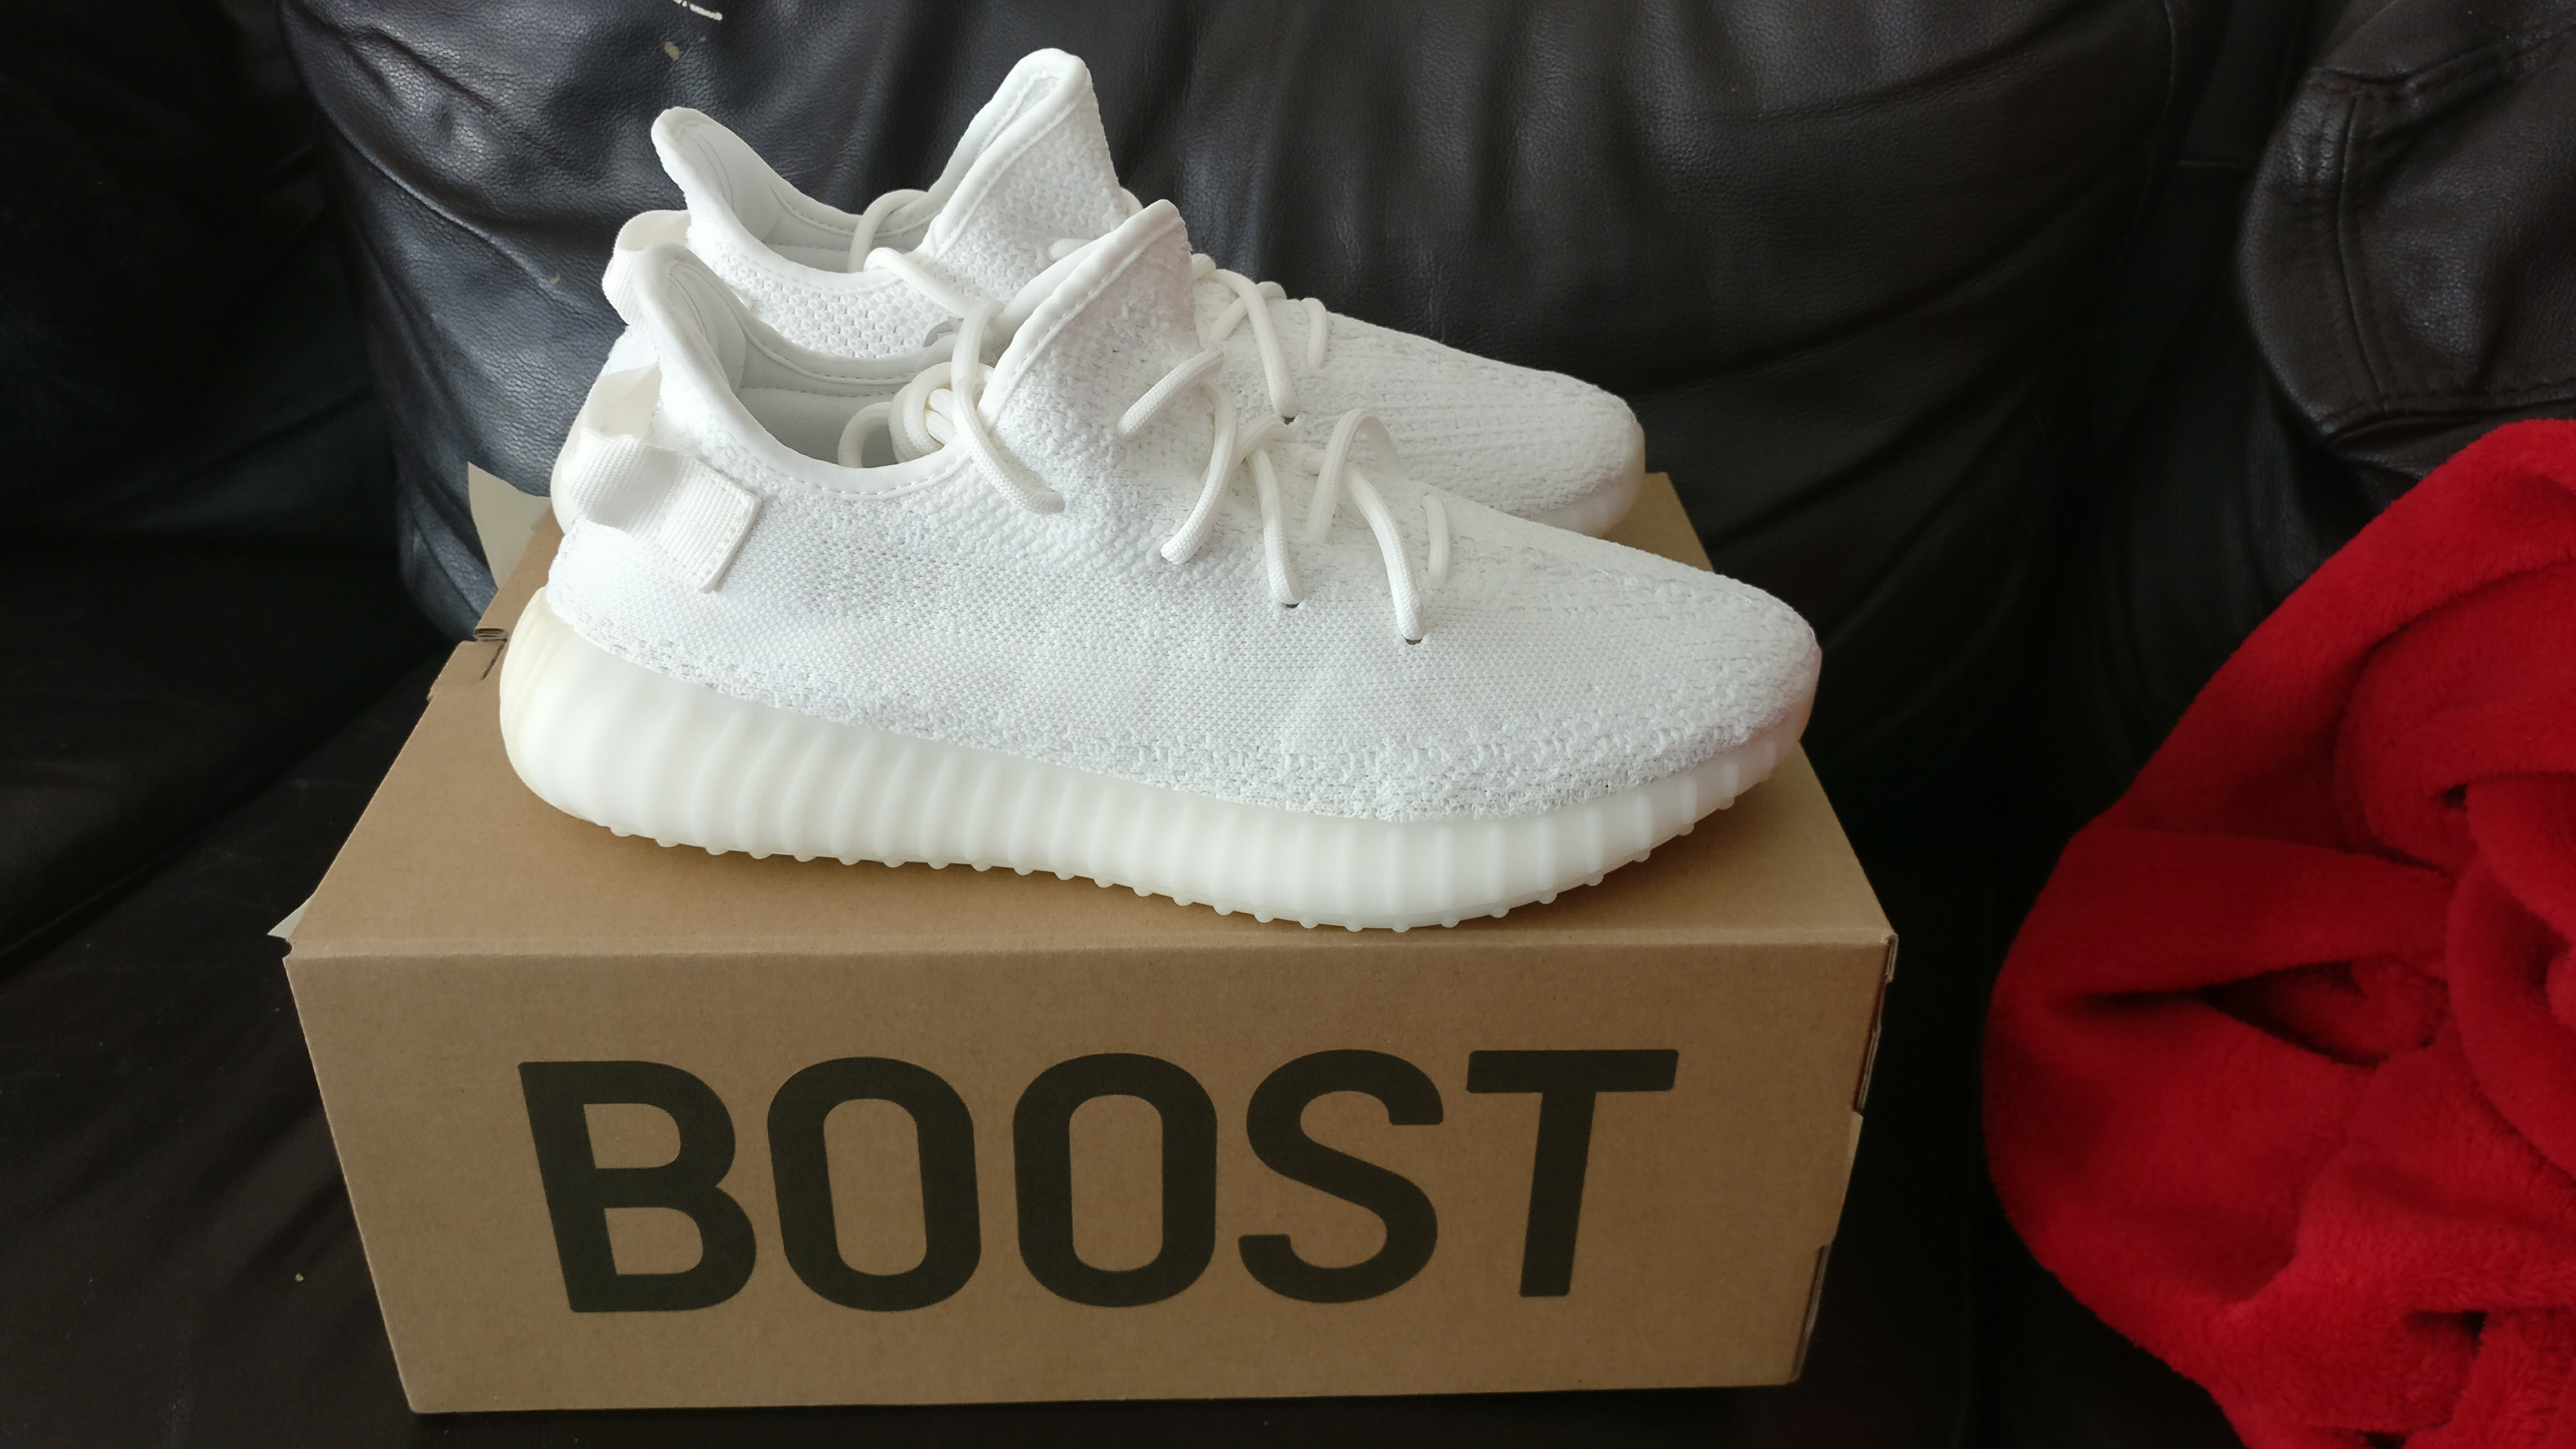 c85a5aa6 Adidas × Adidas Kanye West × Yeezy Boost ×. YEEZY BOOST 350 V2 CREAM WHITE  ...